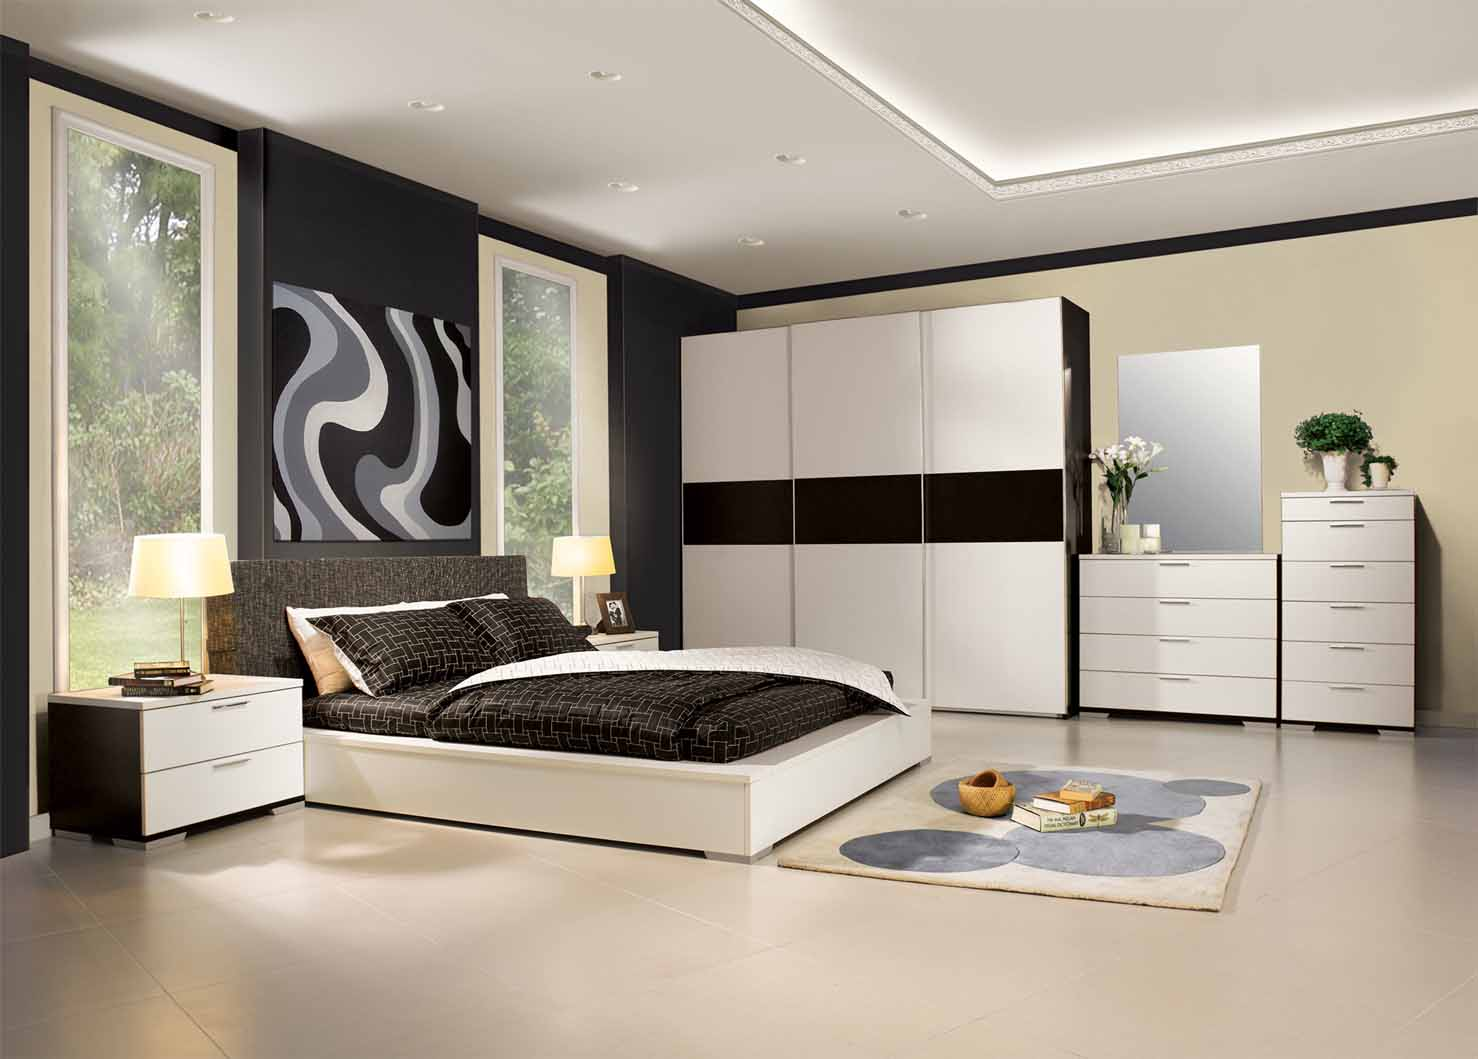 Modern bedroom design fouadtalal - Bedrooms designs ...